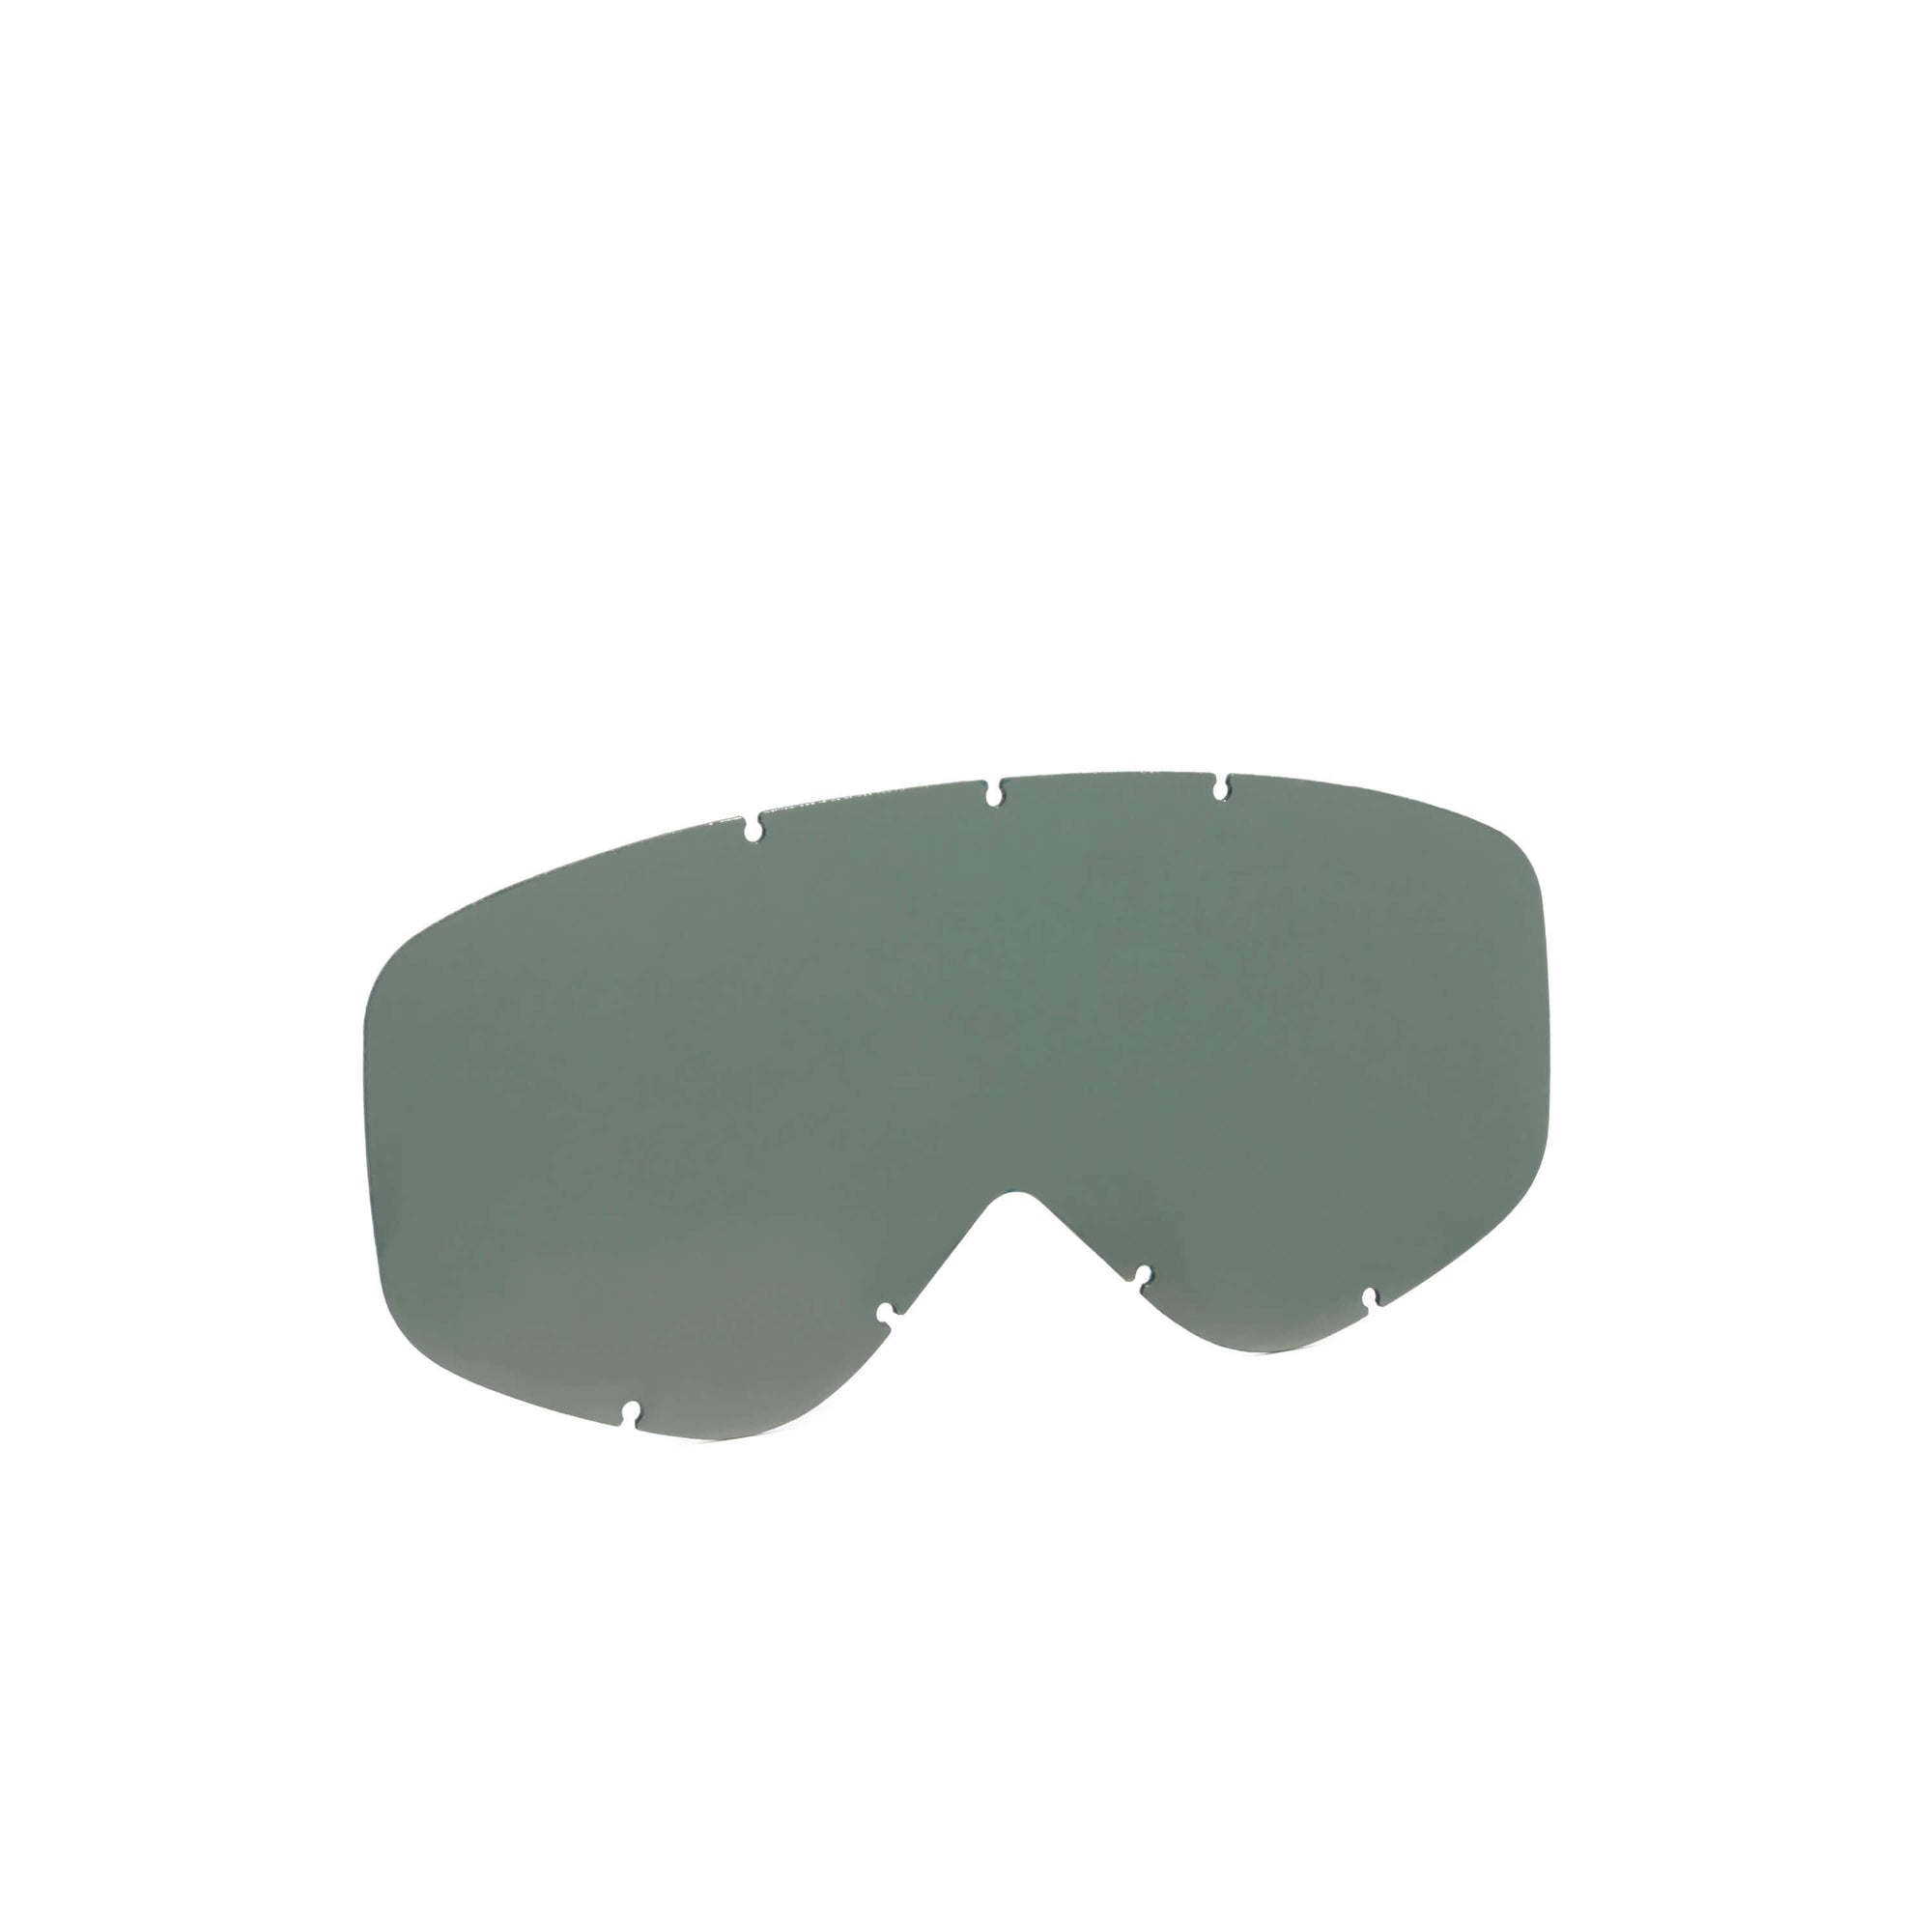 Wonderfy Single Lens Silver Mirror - Spare Lenses